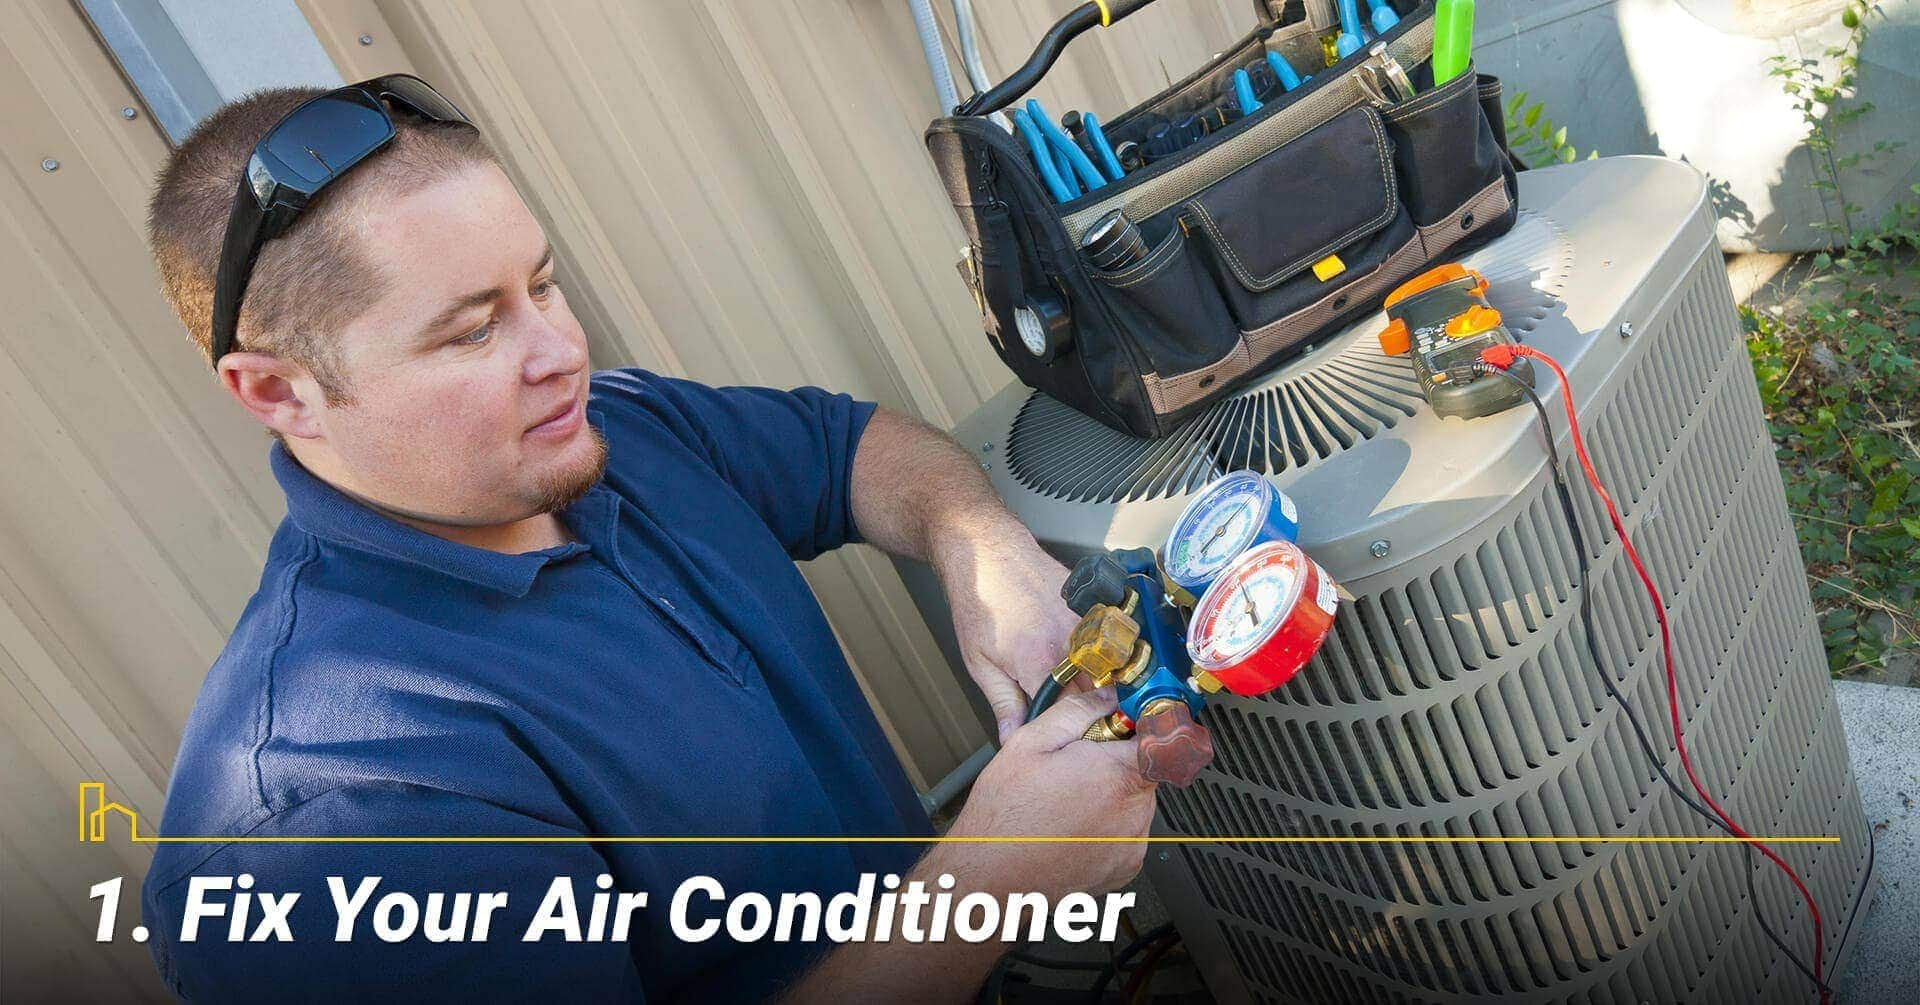 Fix Your Air Conditioner, get professional help to fix your air conditioner